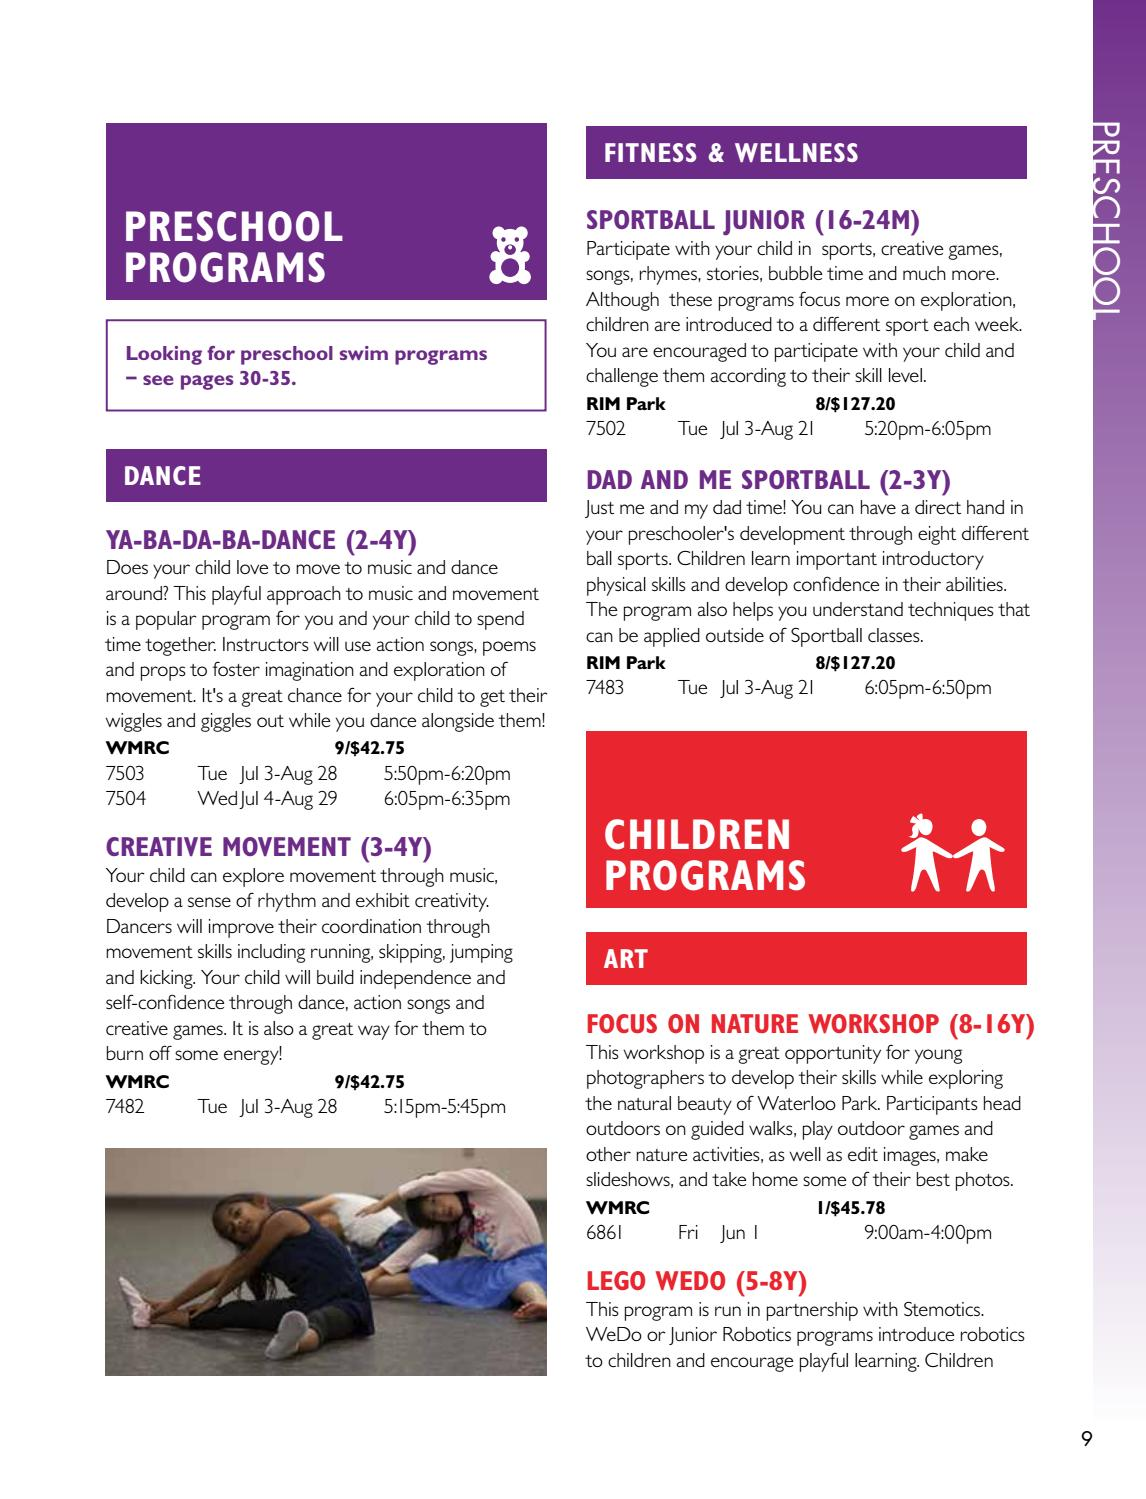 Why Young Kids Learn Through Movement >> Summer 2018 Program Activities Guide By City Of Waterloo Issuu